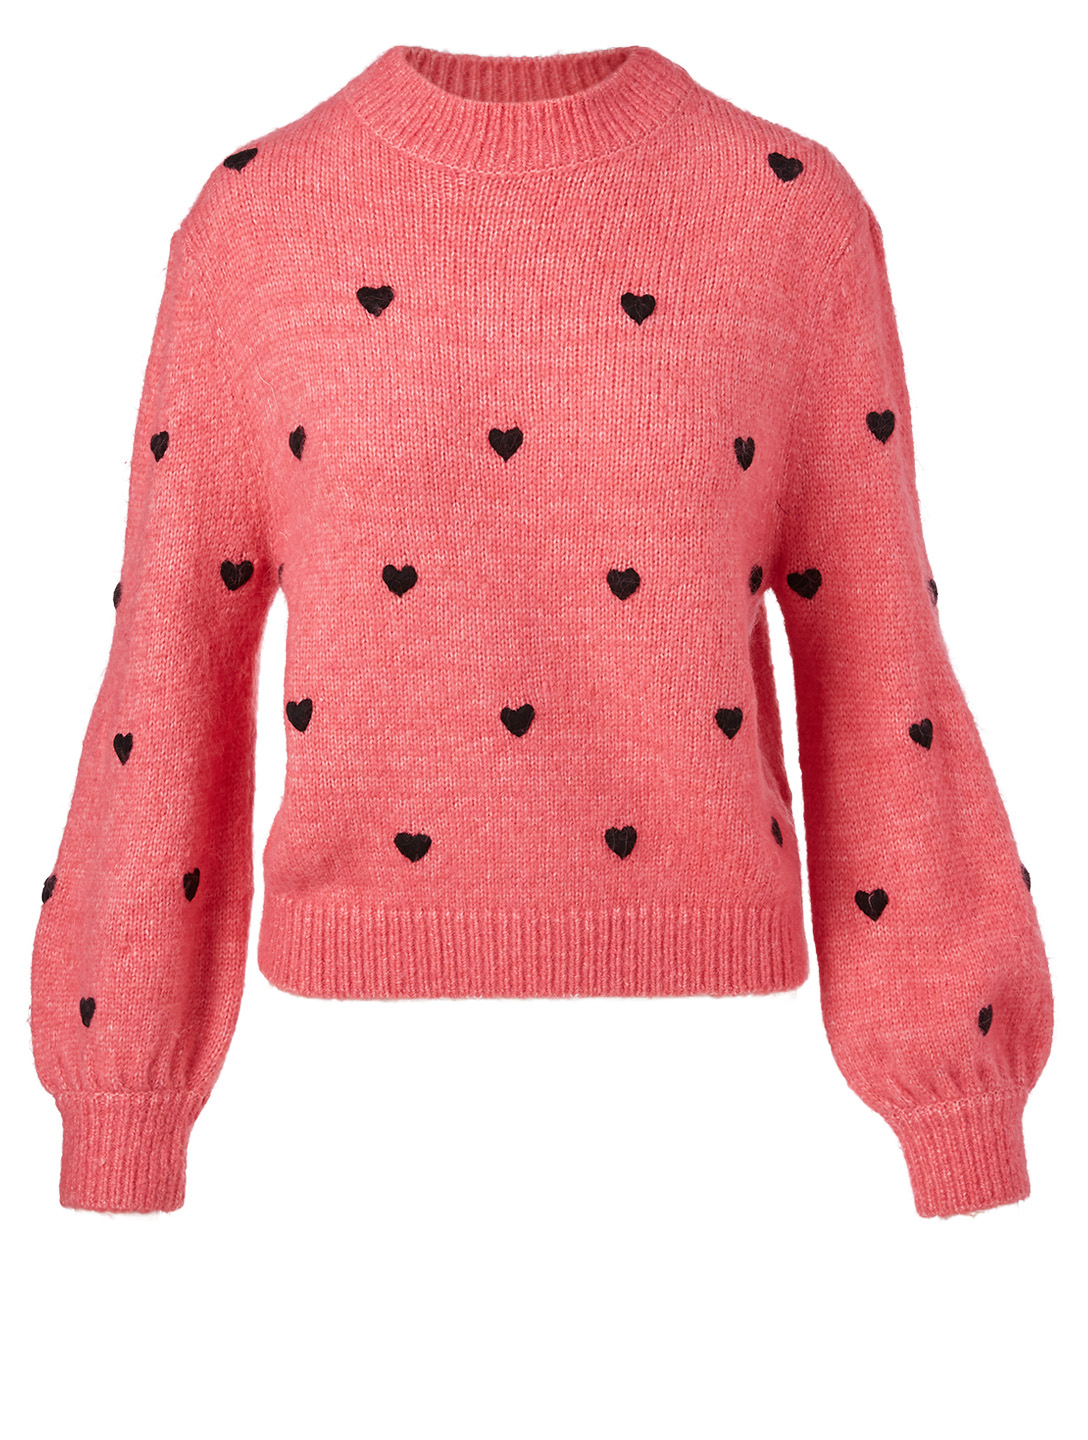 RIXO Ariana Sweater In Polka Dot Print Women's Black